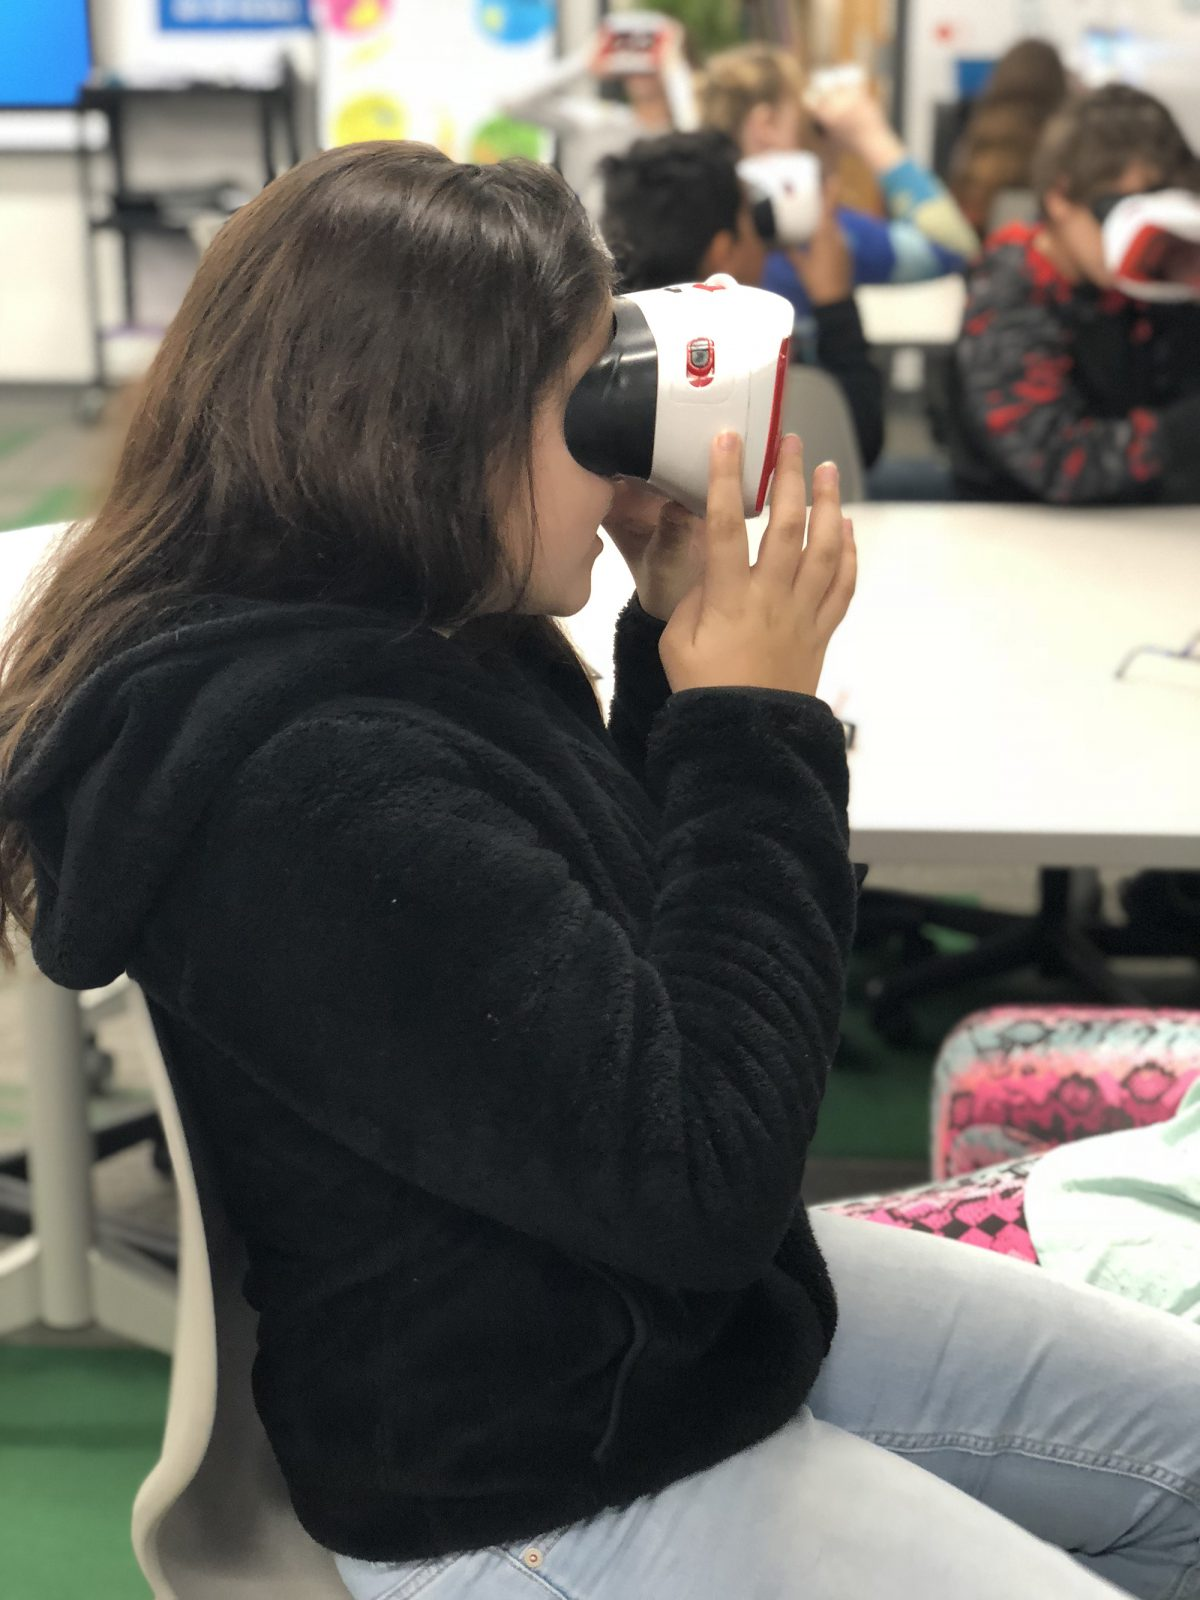 Students take virtual journeys around the world